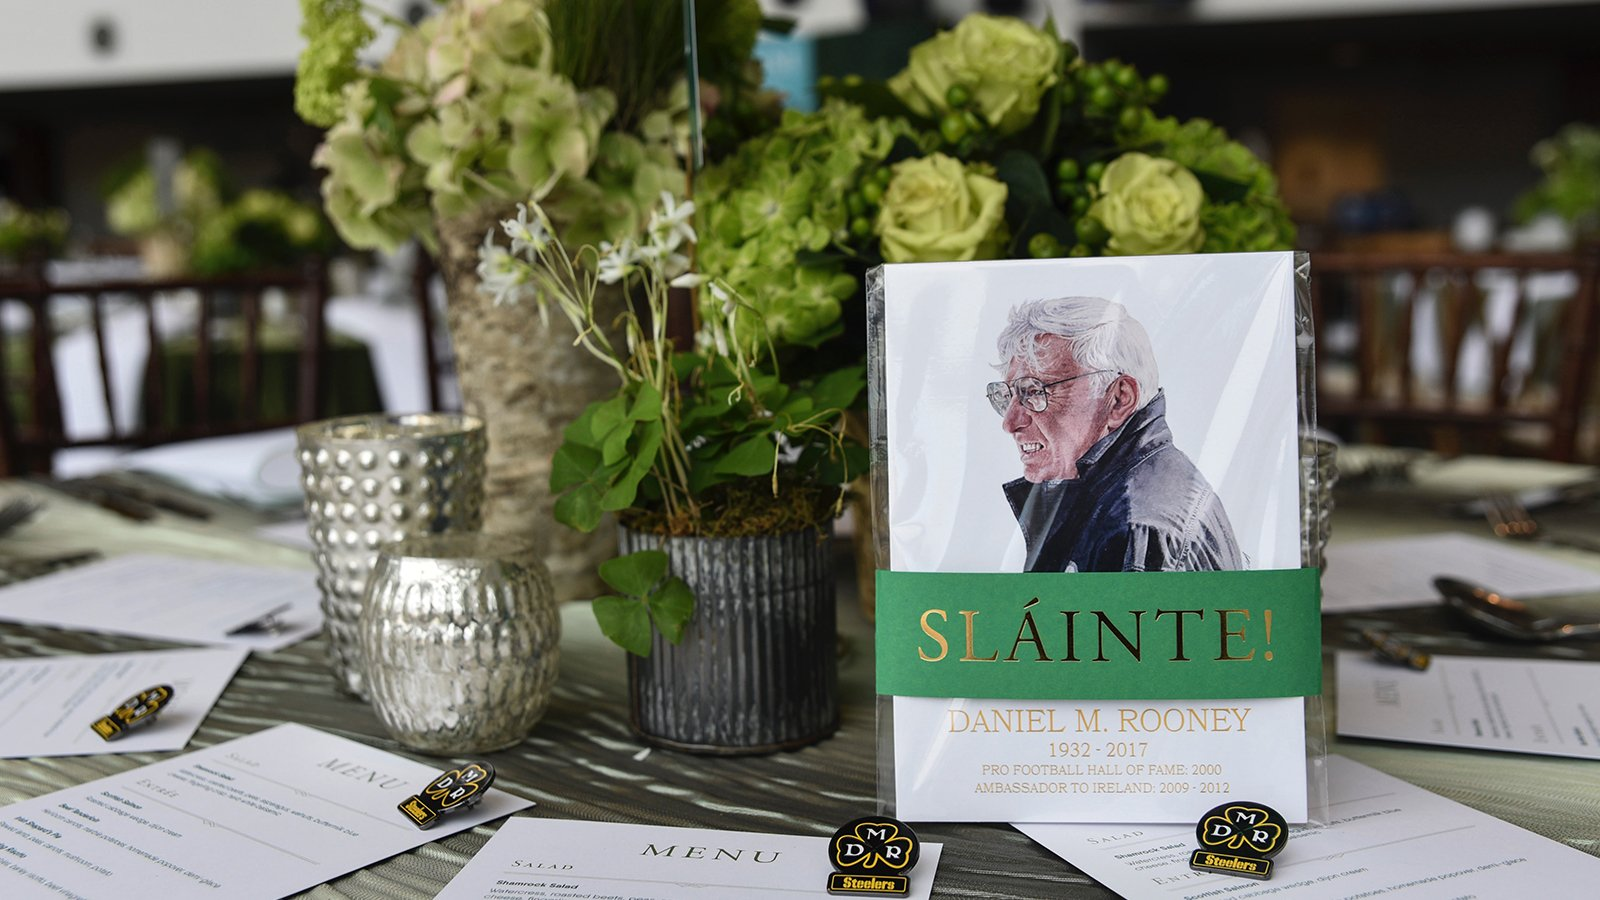 The annual Ireland Funds Pittsburgh Gala was an outpouring of memories of Dan Rooney. https://t.co/k8gDjHzu8b